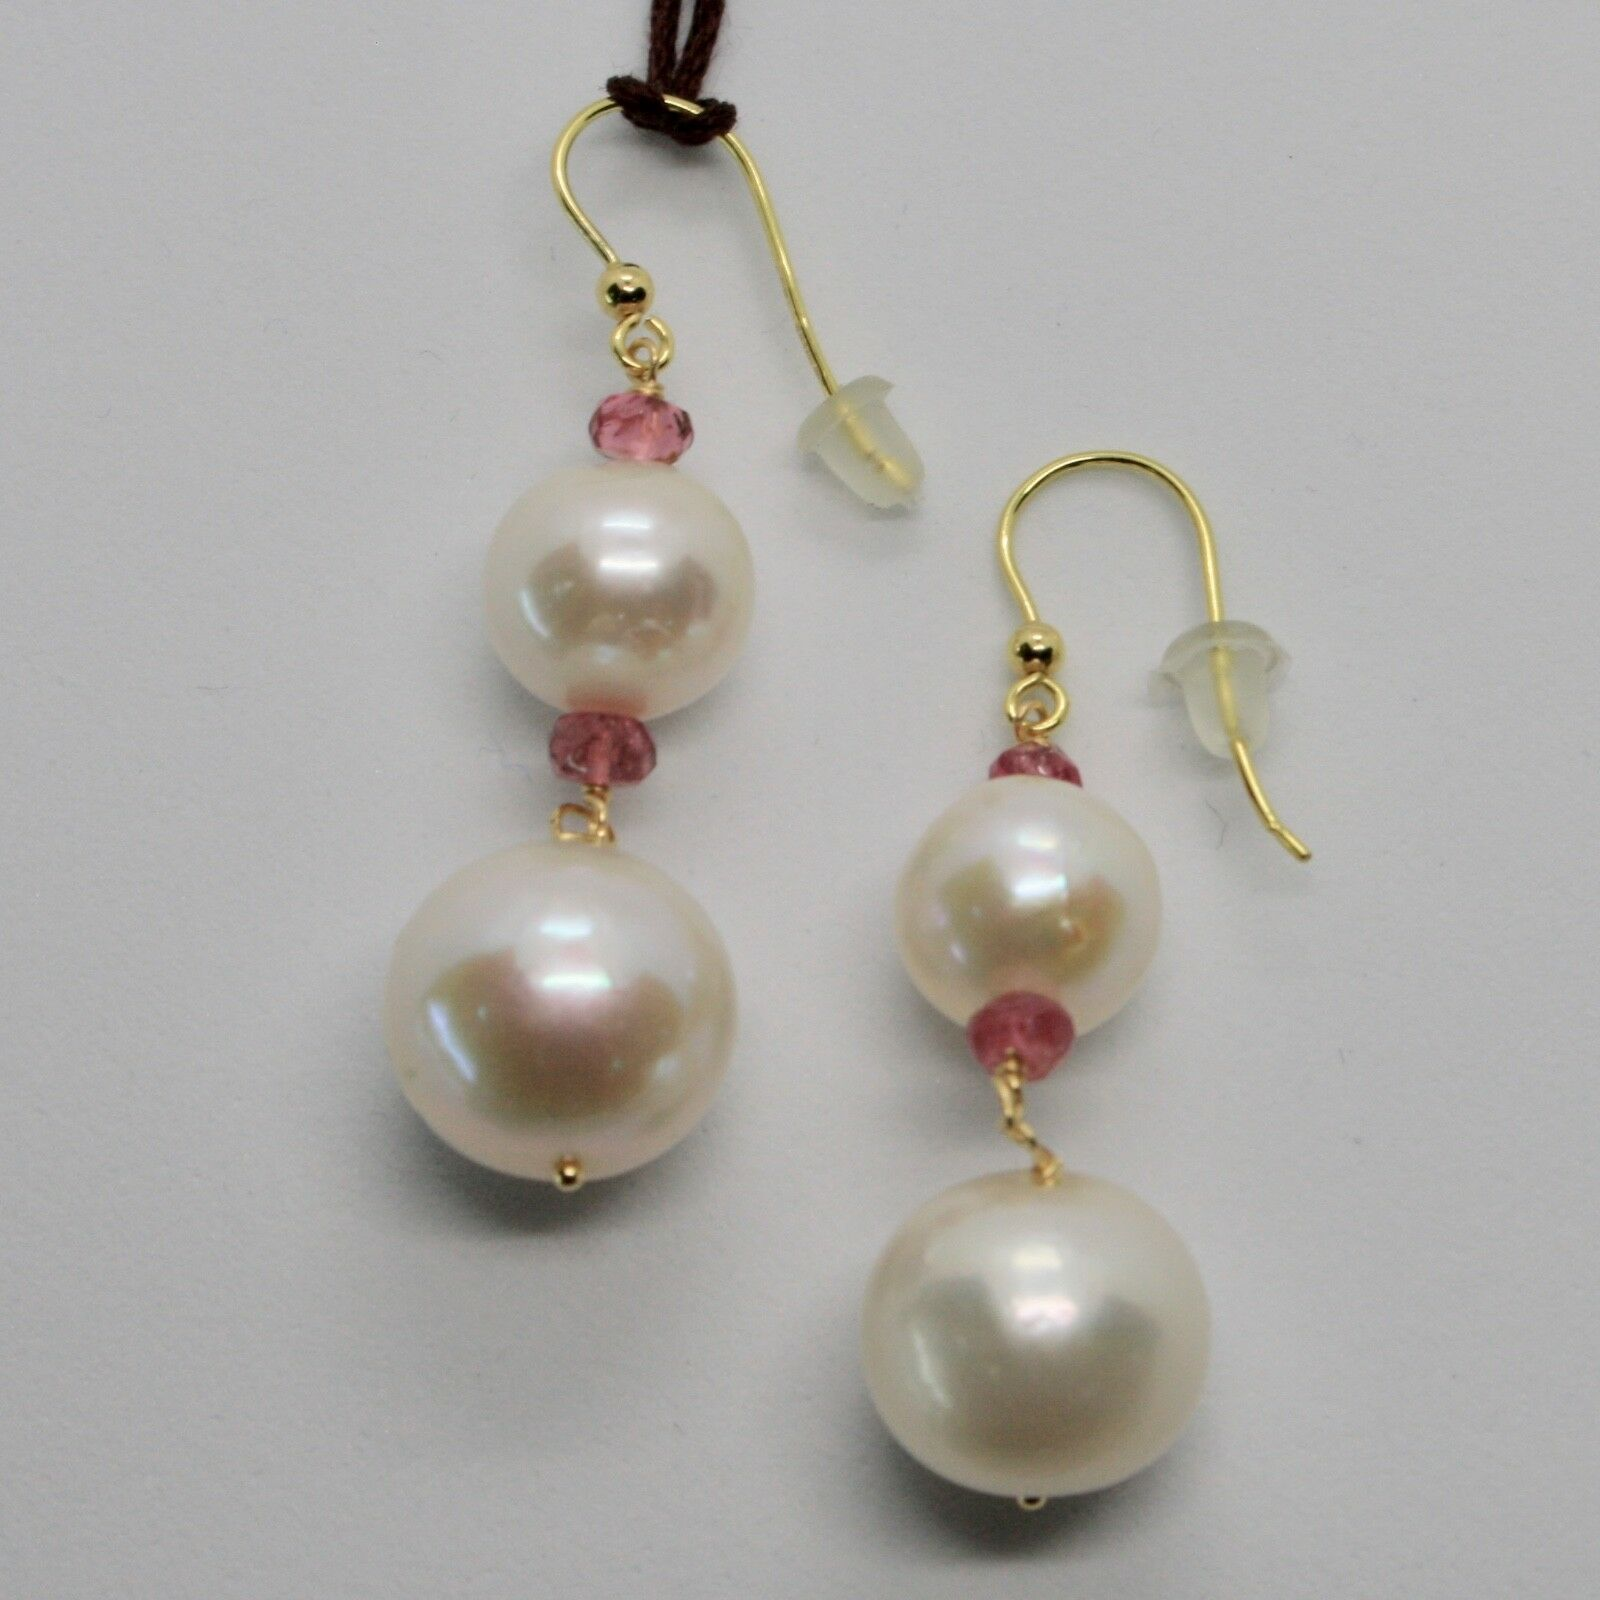 Yellow Gold Earrings 18K 750 Pearls Water Dolce Tourmaline Pink Made in Italy